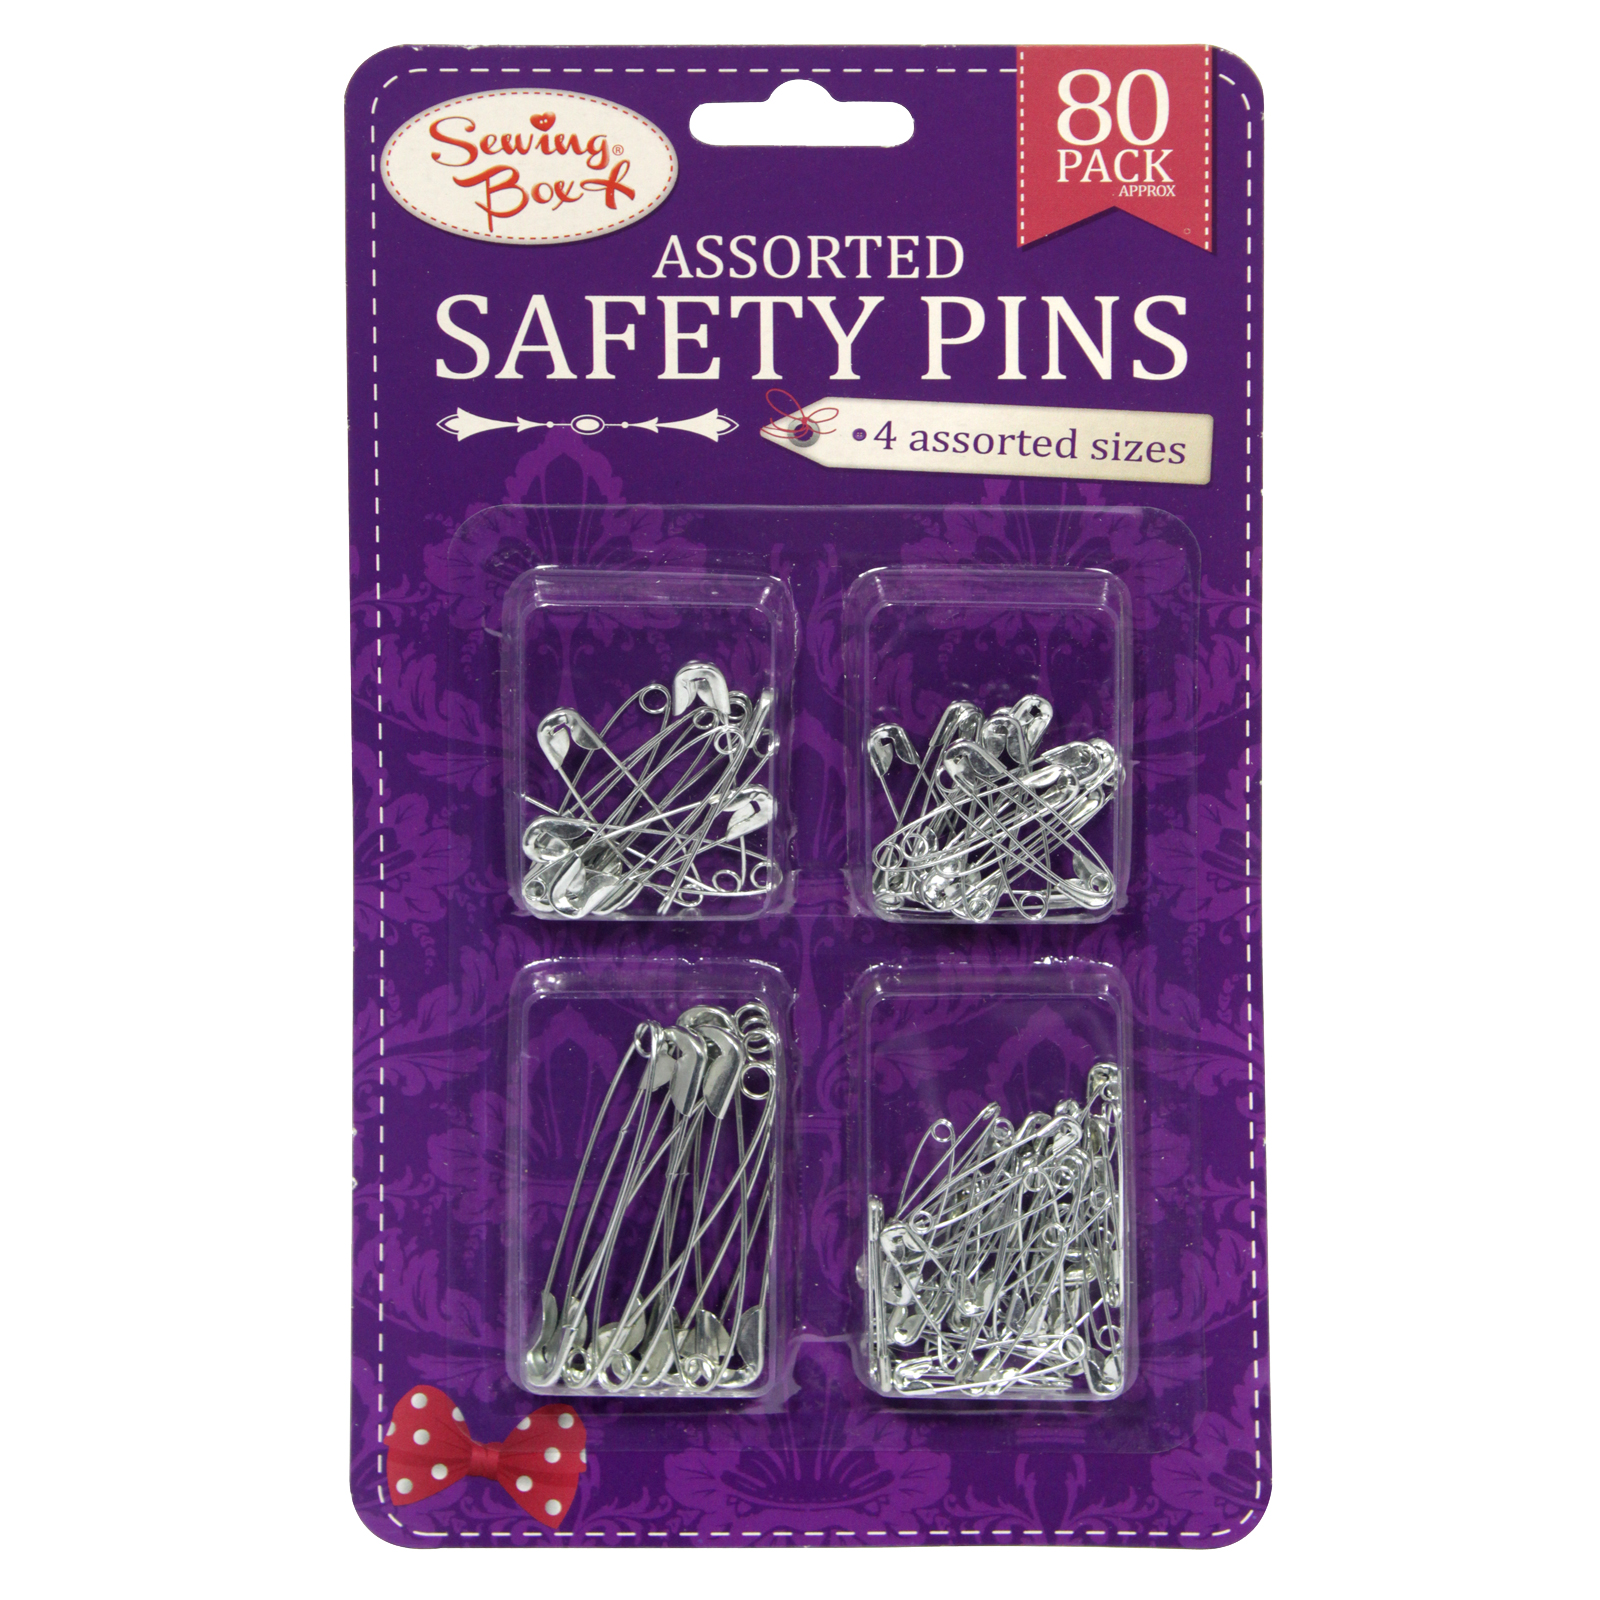 SEWING BOX SAFETY PINS ASSORTED SILVER